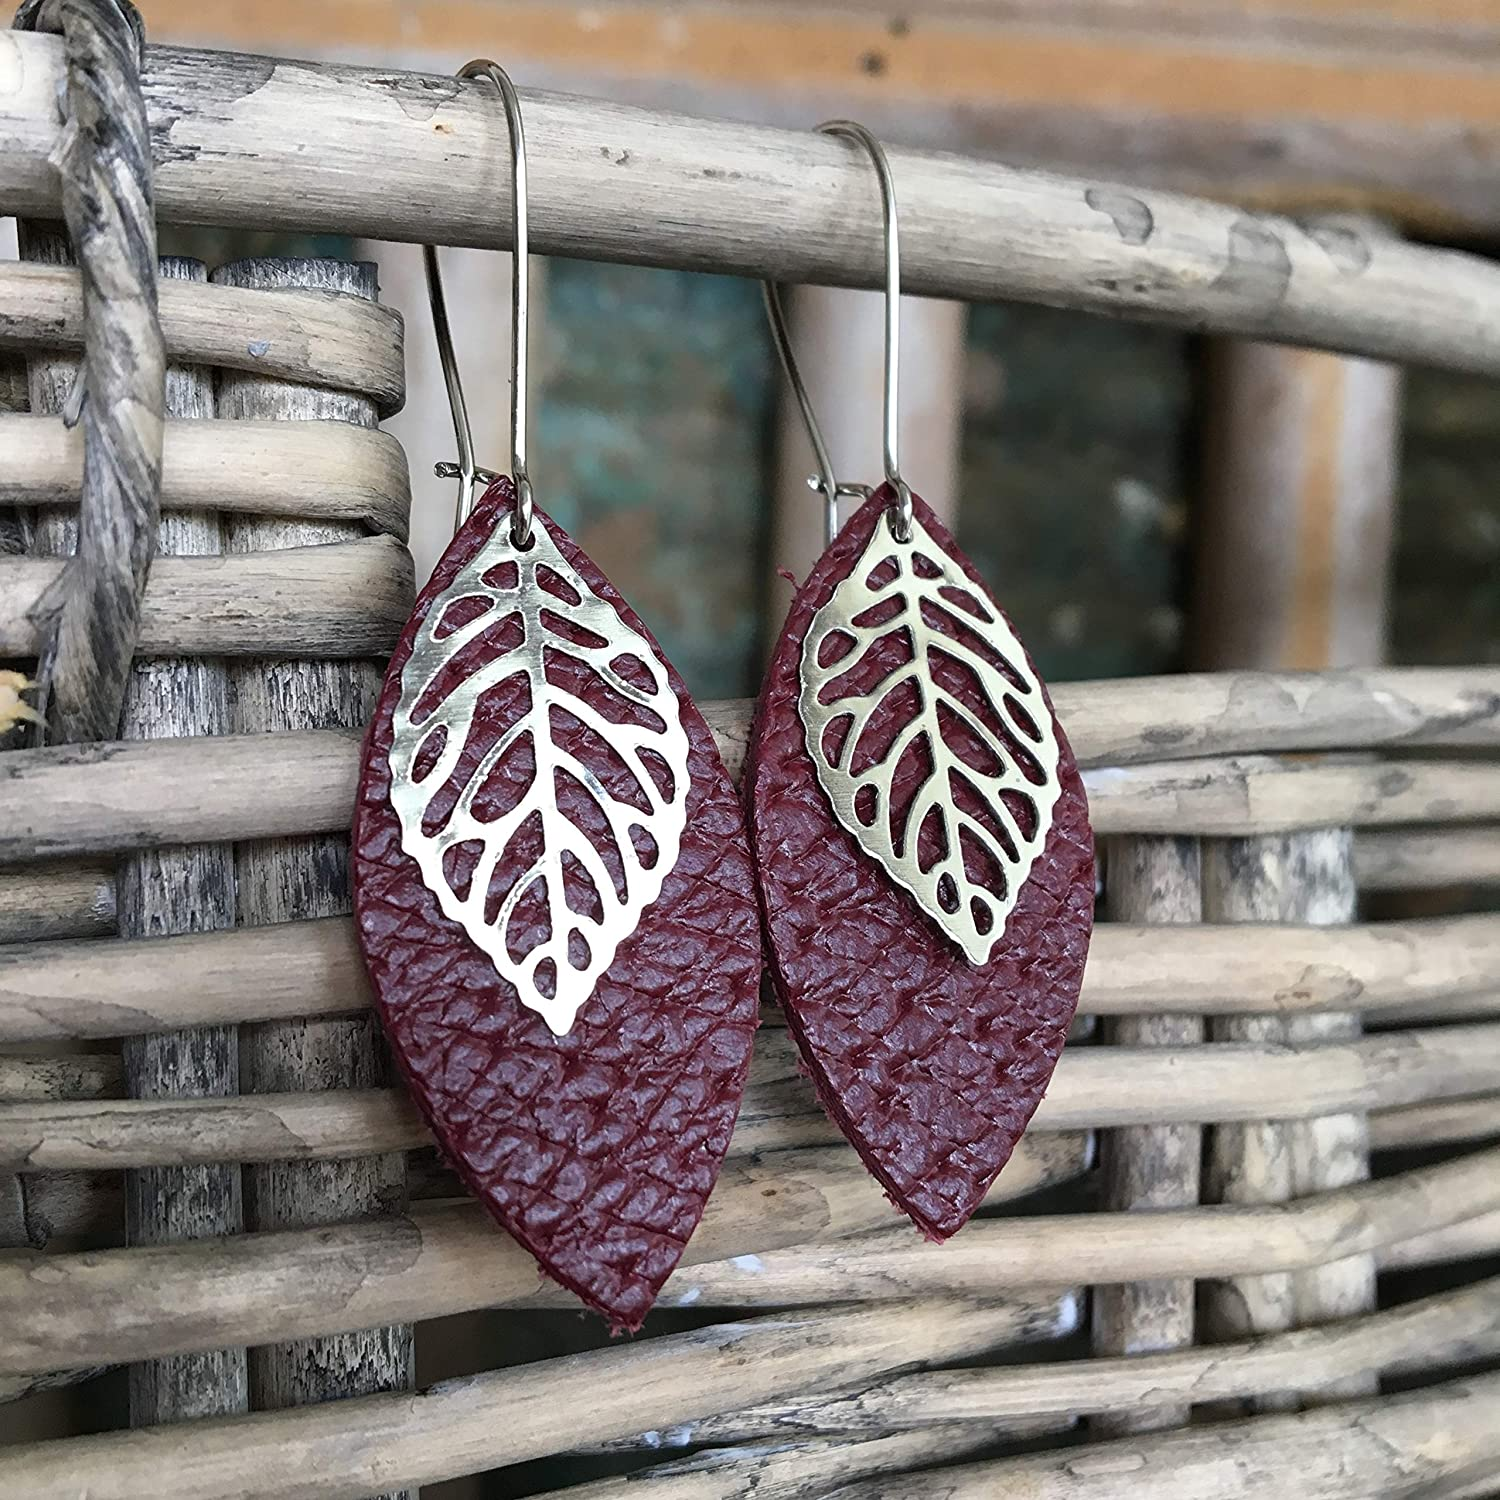 Leather Leaf Earrings - Burgundy Red Leather Petal with Metal Leaf Charm - Small Lightweight Bohemian Dangle Earrings